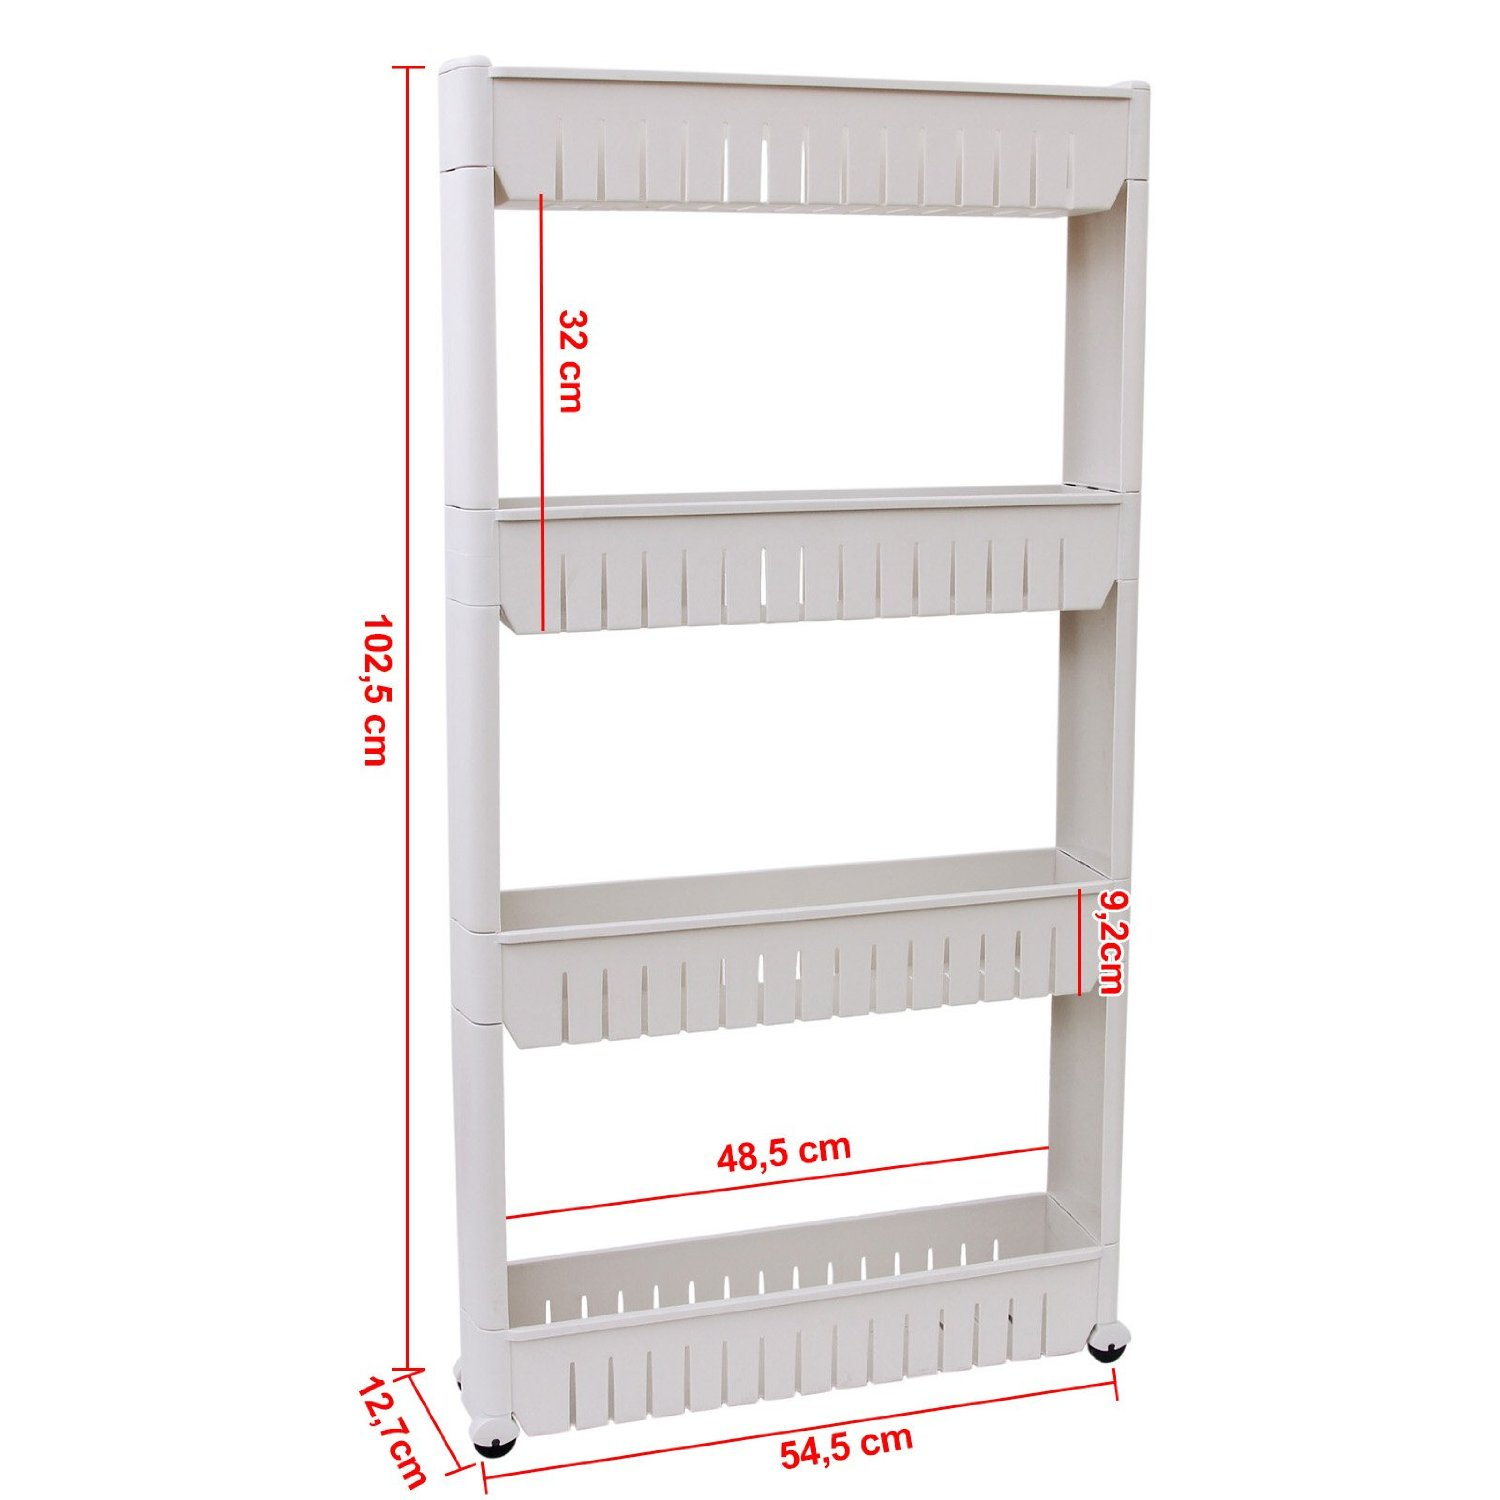 Rolling 3 4 Shelf Slim Can Spice Rack Holder Cart Kitchen Storage